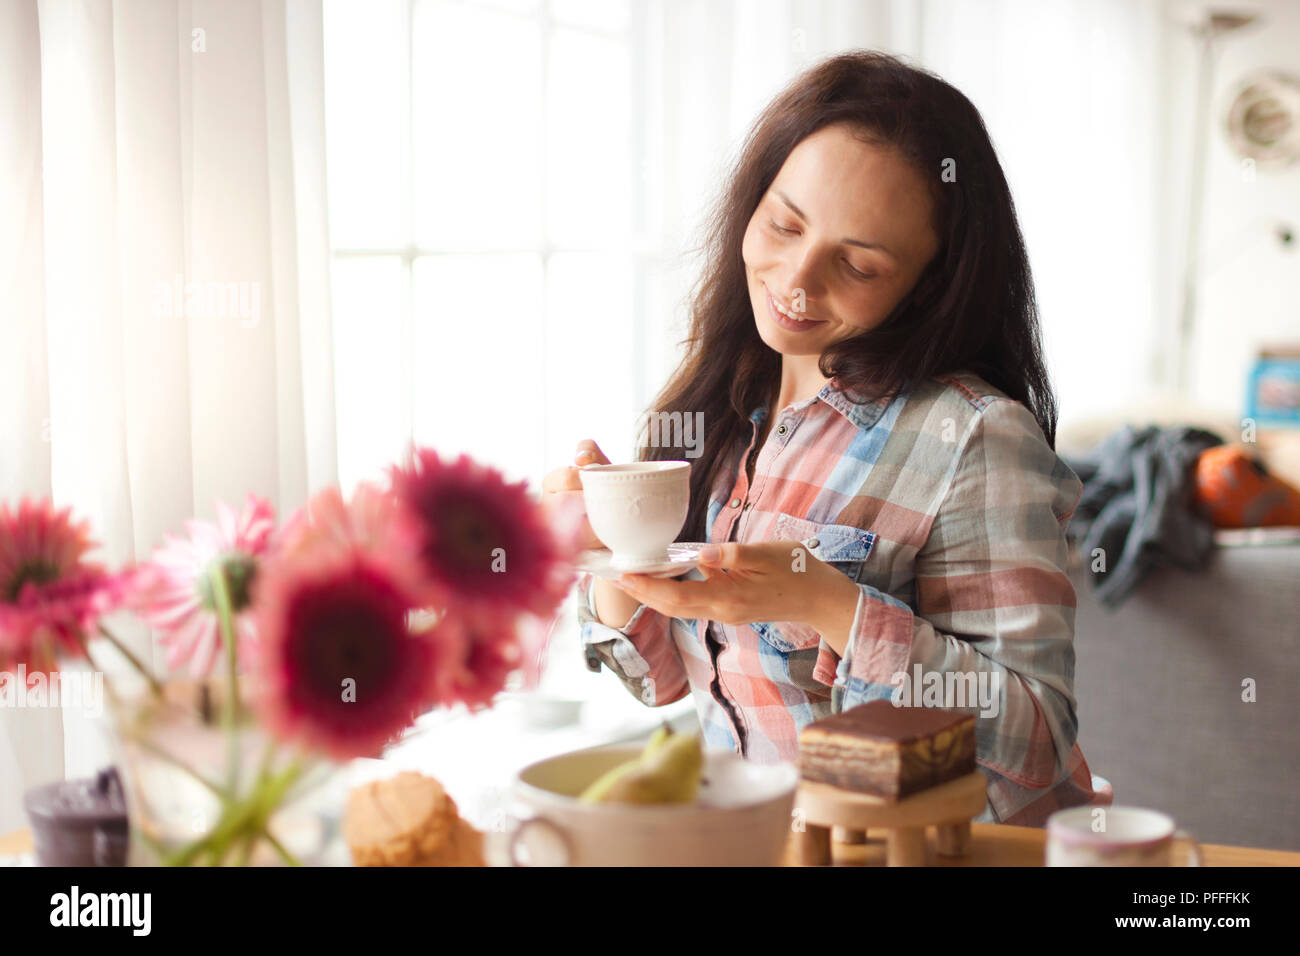 Happy girl with a mug of fragrant coffee in hands. Good breakfast at home in the living room by the window. Free space for text. - Stock Image